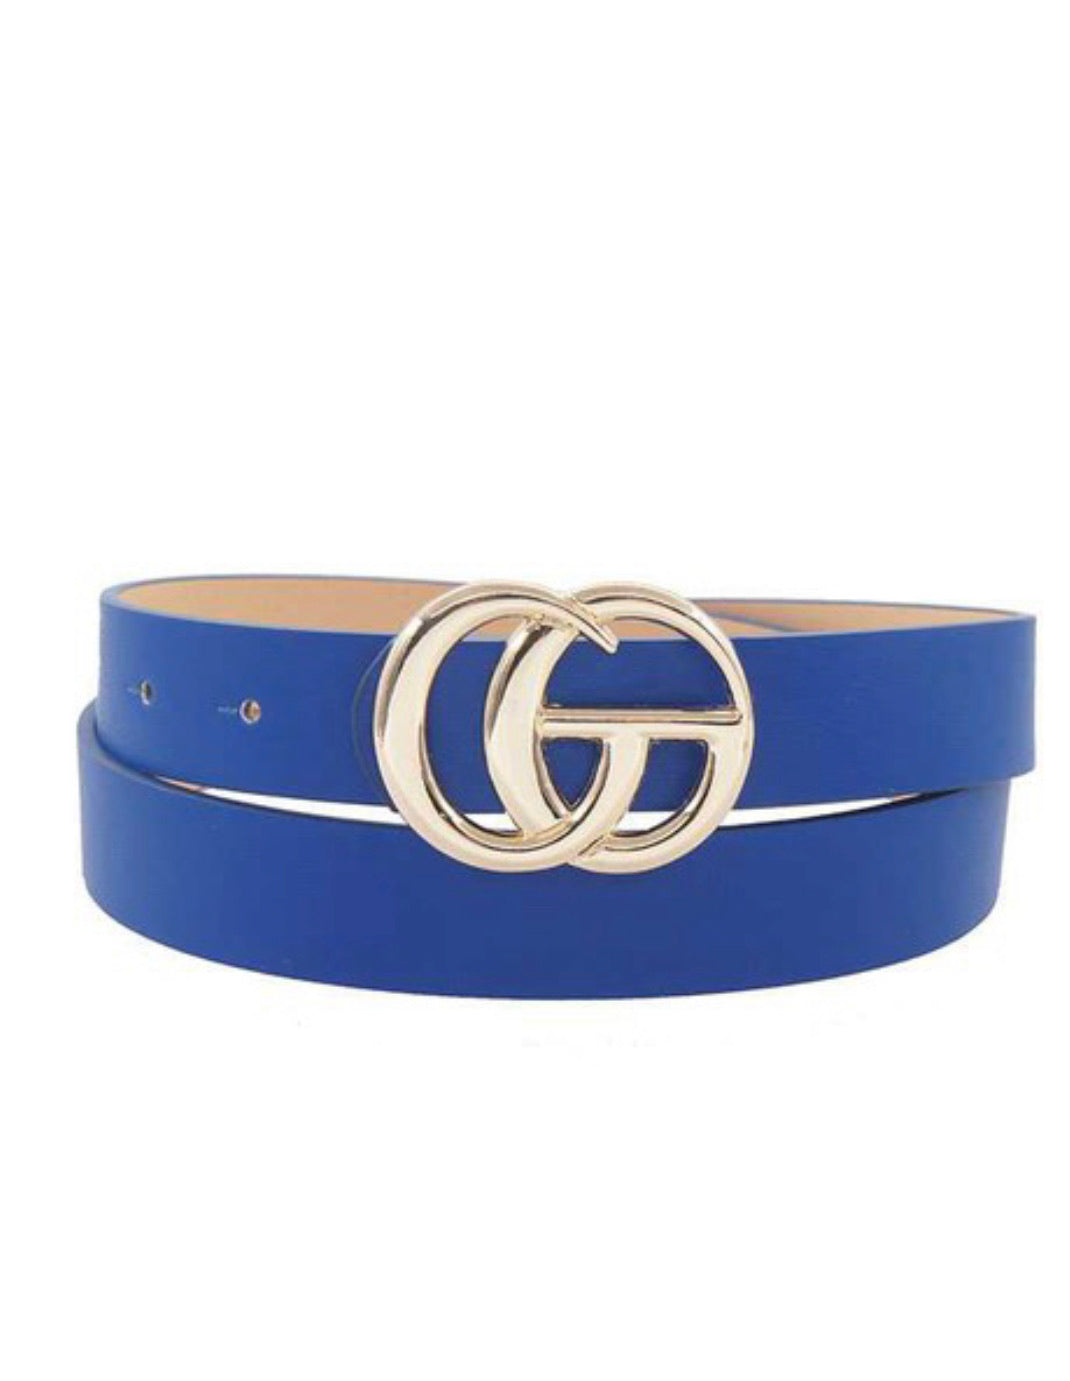 GO Belt Royal Blue